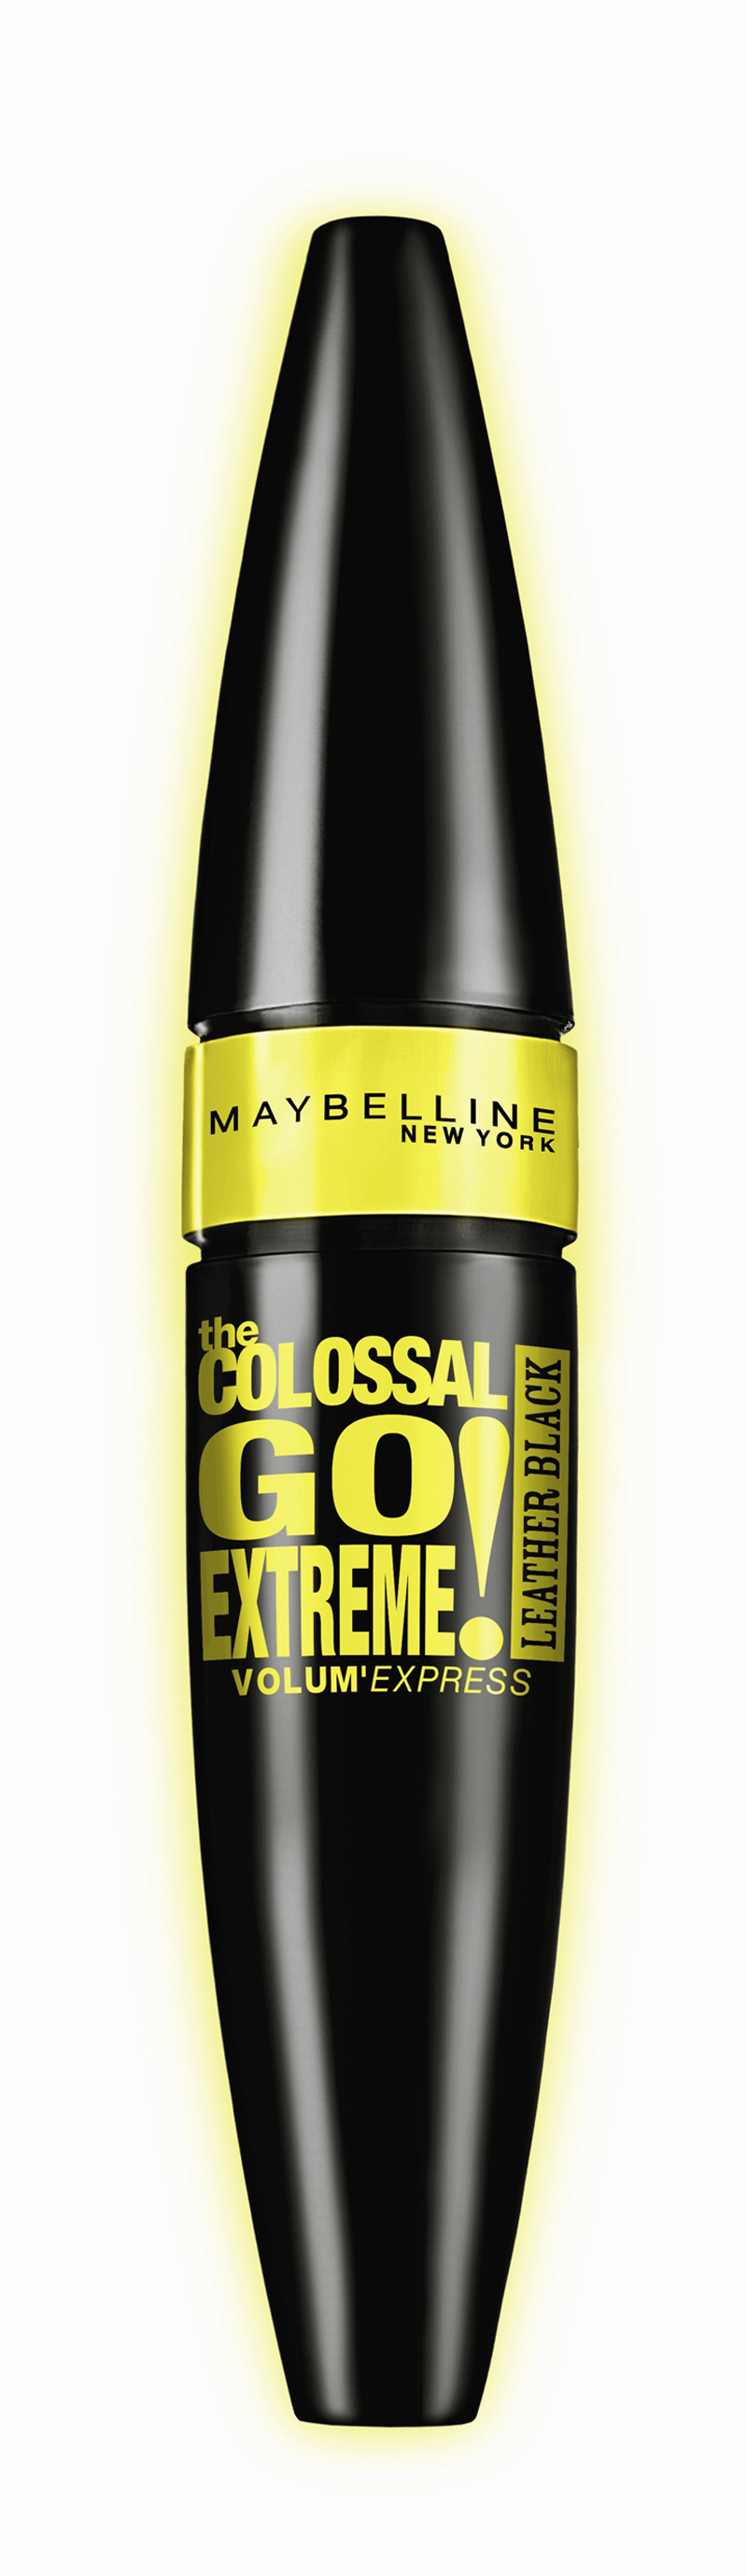 Trivia: Maybelline regala 4 kits de la nueva máscara Colossal Intense Black